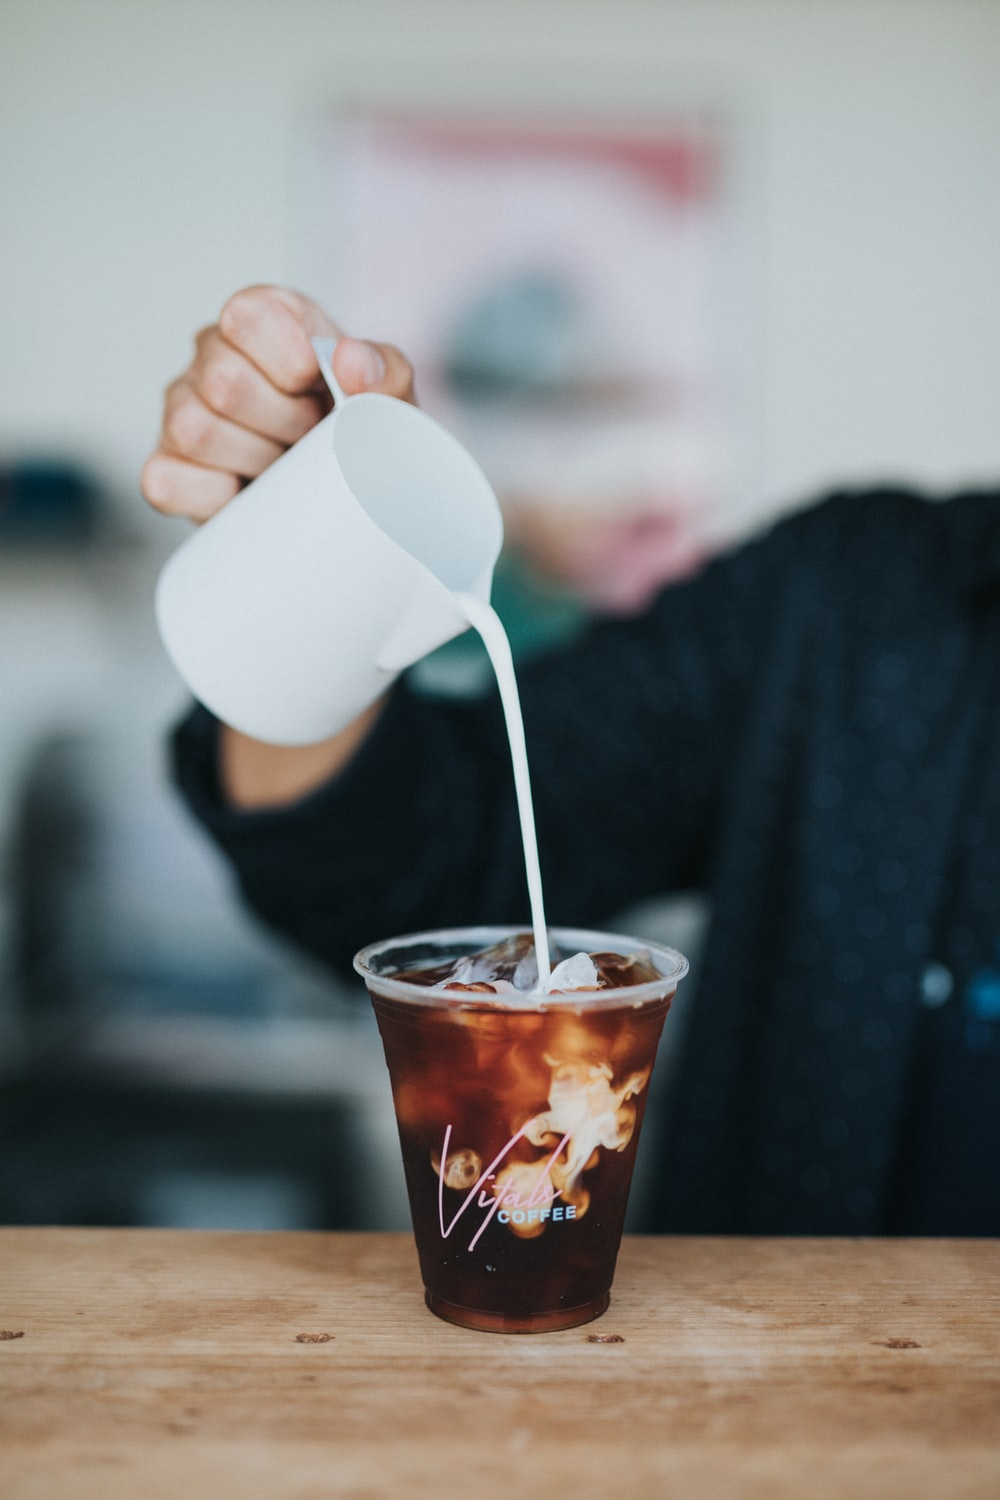 selective focus photography of person holding mug pouring cream in plastic cup